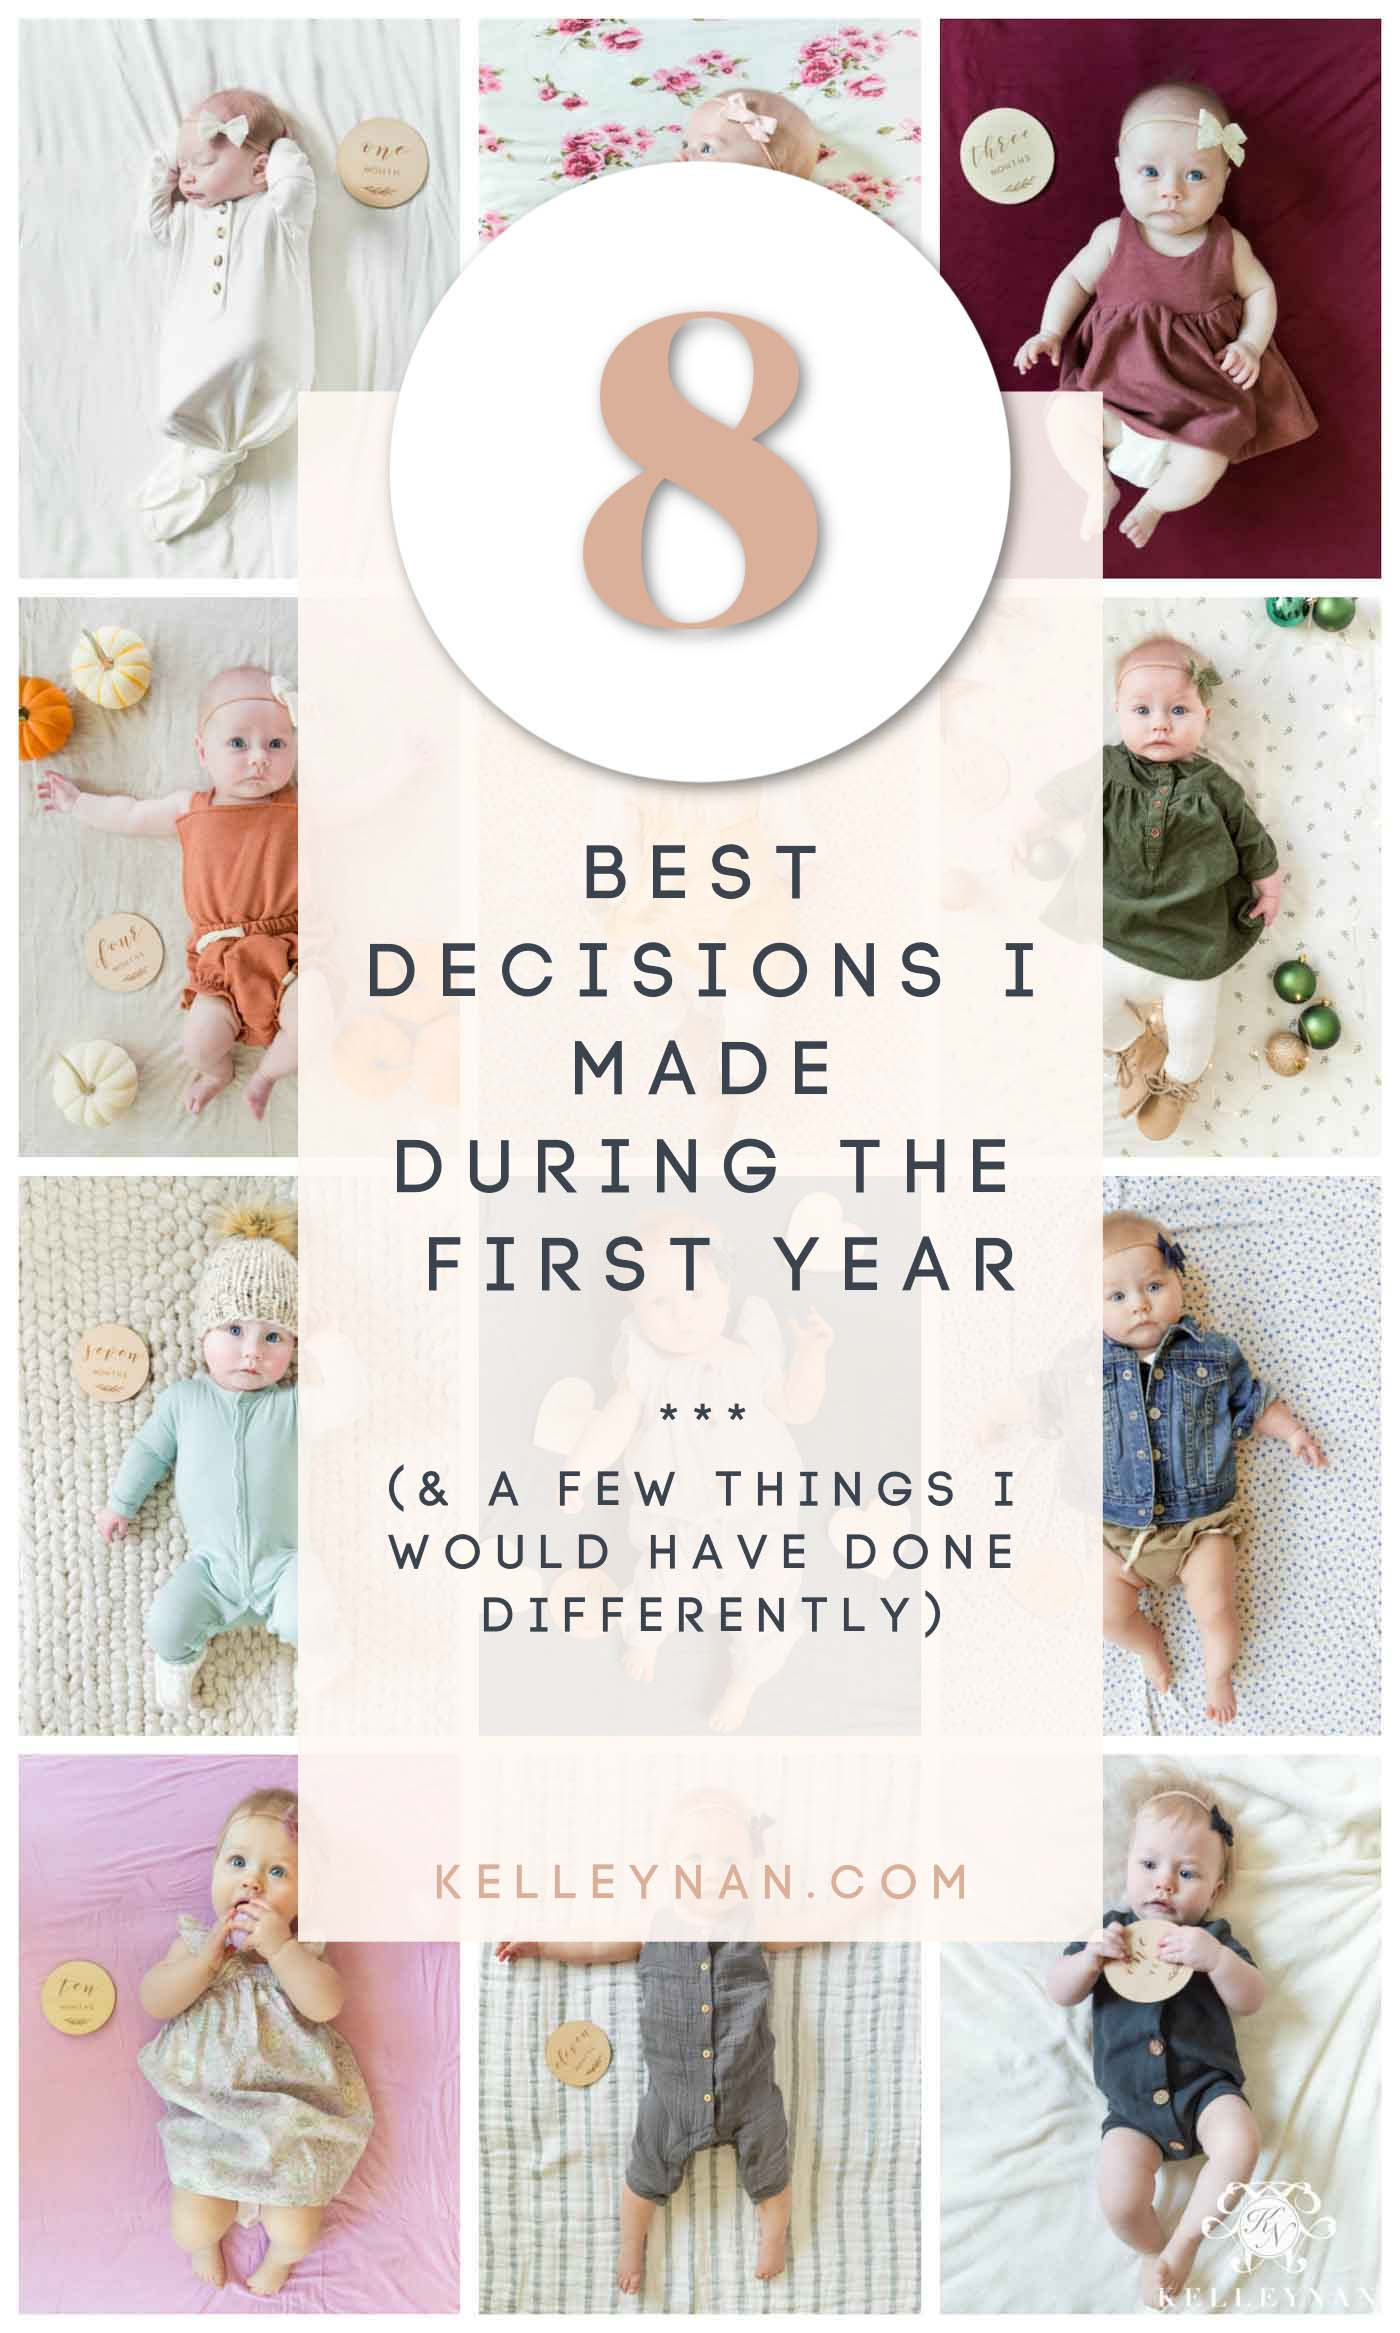 Newborn Baby Parenting -- The 8 Best Decisions I Made